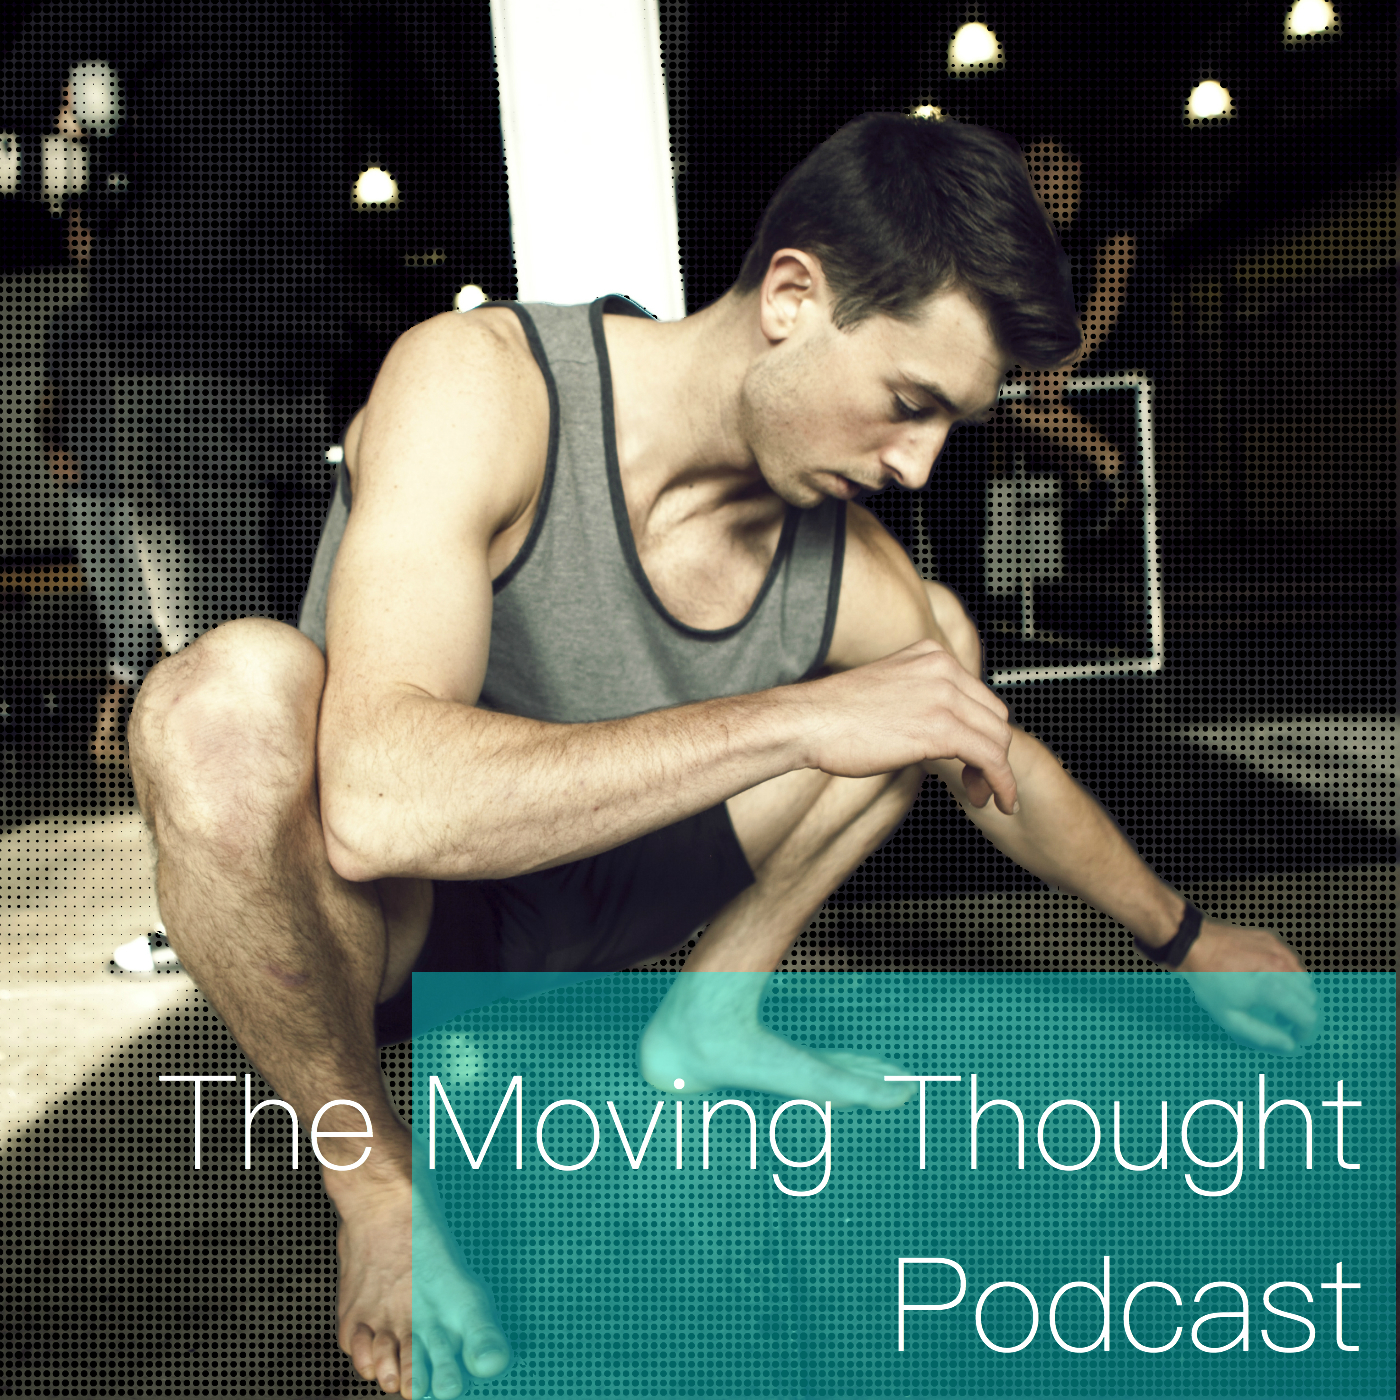 Moving THought Podcast Logo 1.jpg